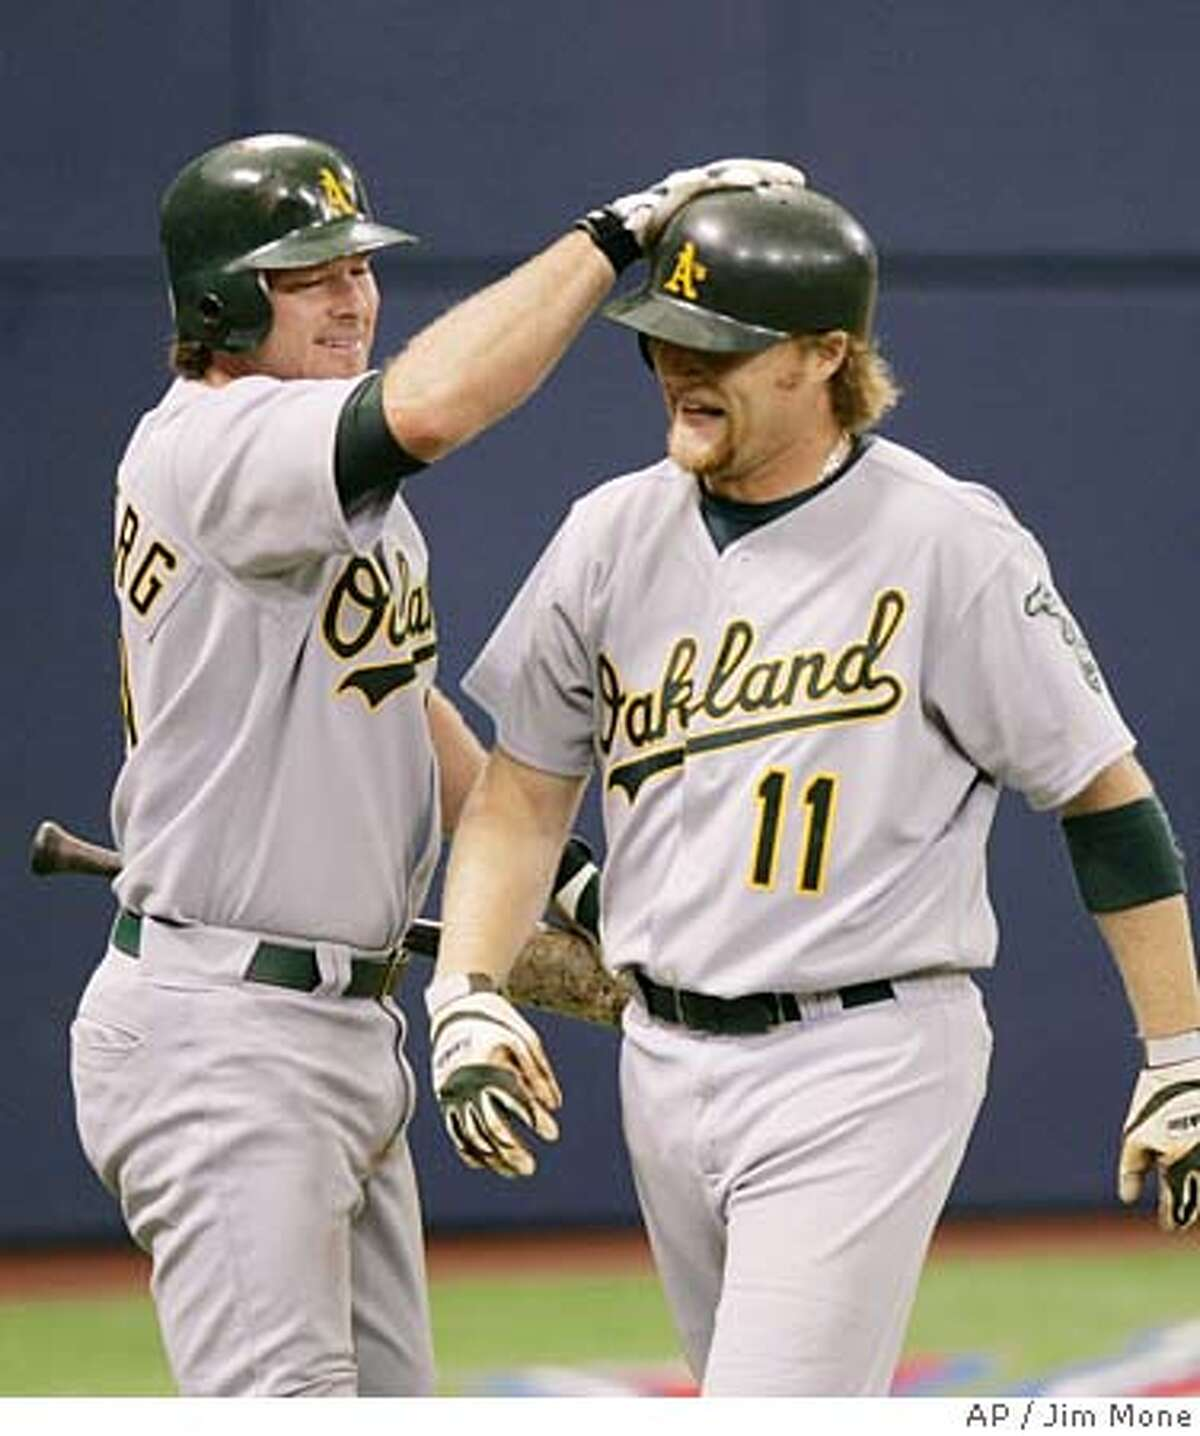 Oakland Athletics' Scott Hatteberg, left, pats Dan Johnson on the helmet after his seventh inning solo home run off Minnesota Twins' Kyle Lohse Thursday, Aug. 4, 2005 in Minneapolis. The Athletics won 5-2, taking three games of the four game series. (AP Photo/Jim Mone)